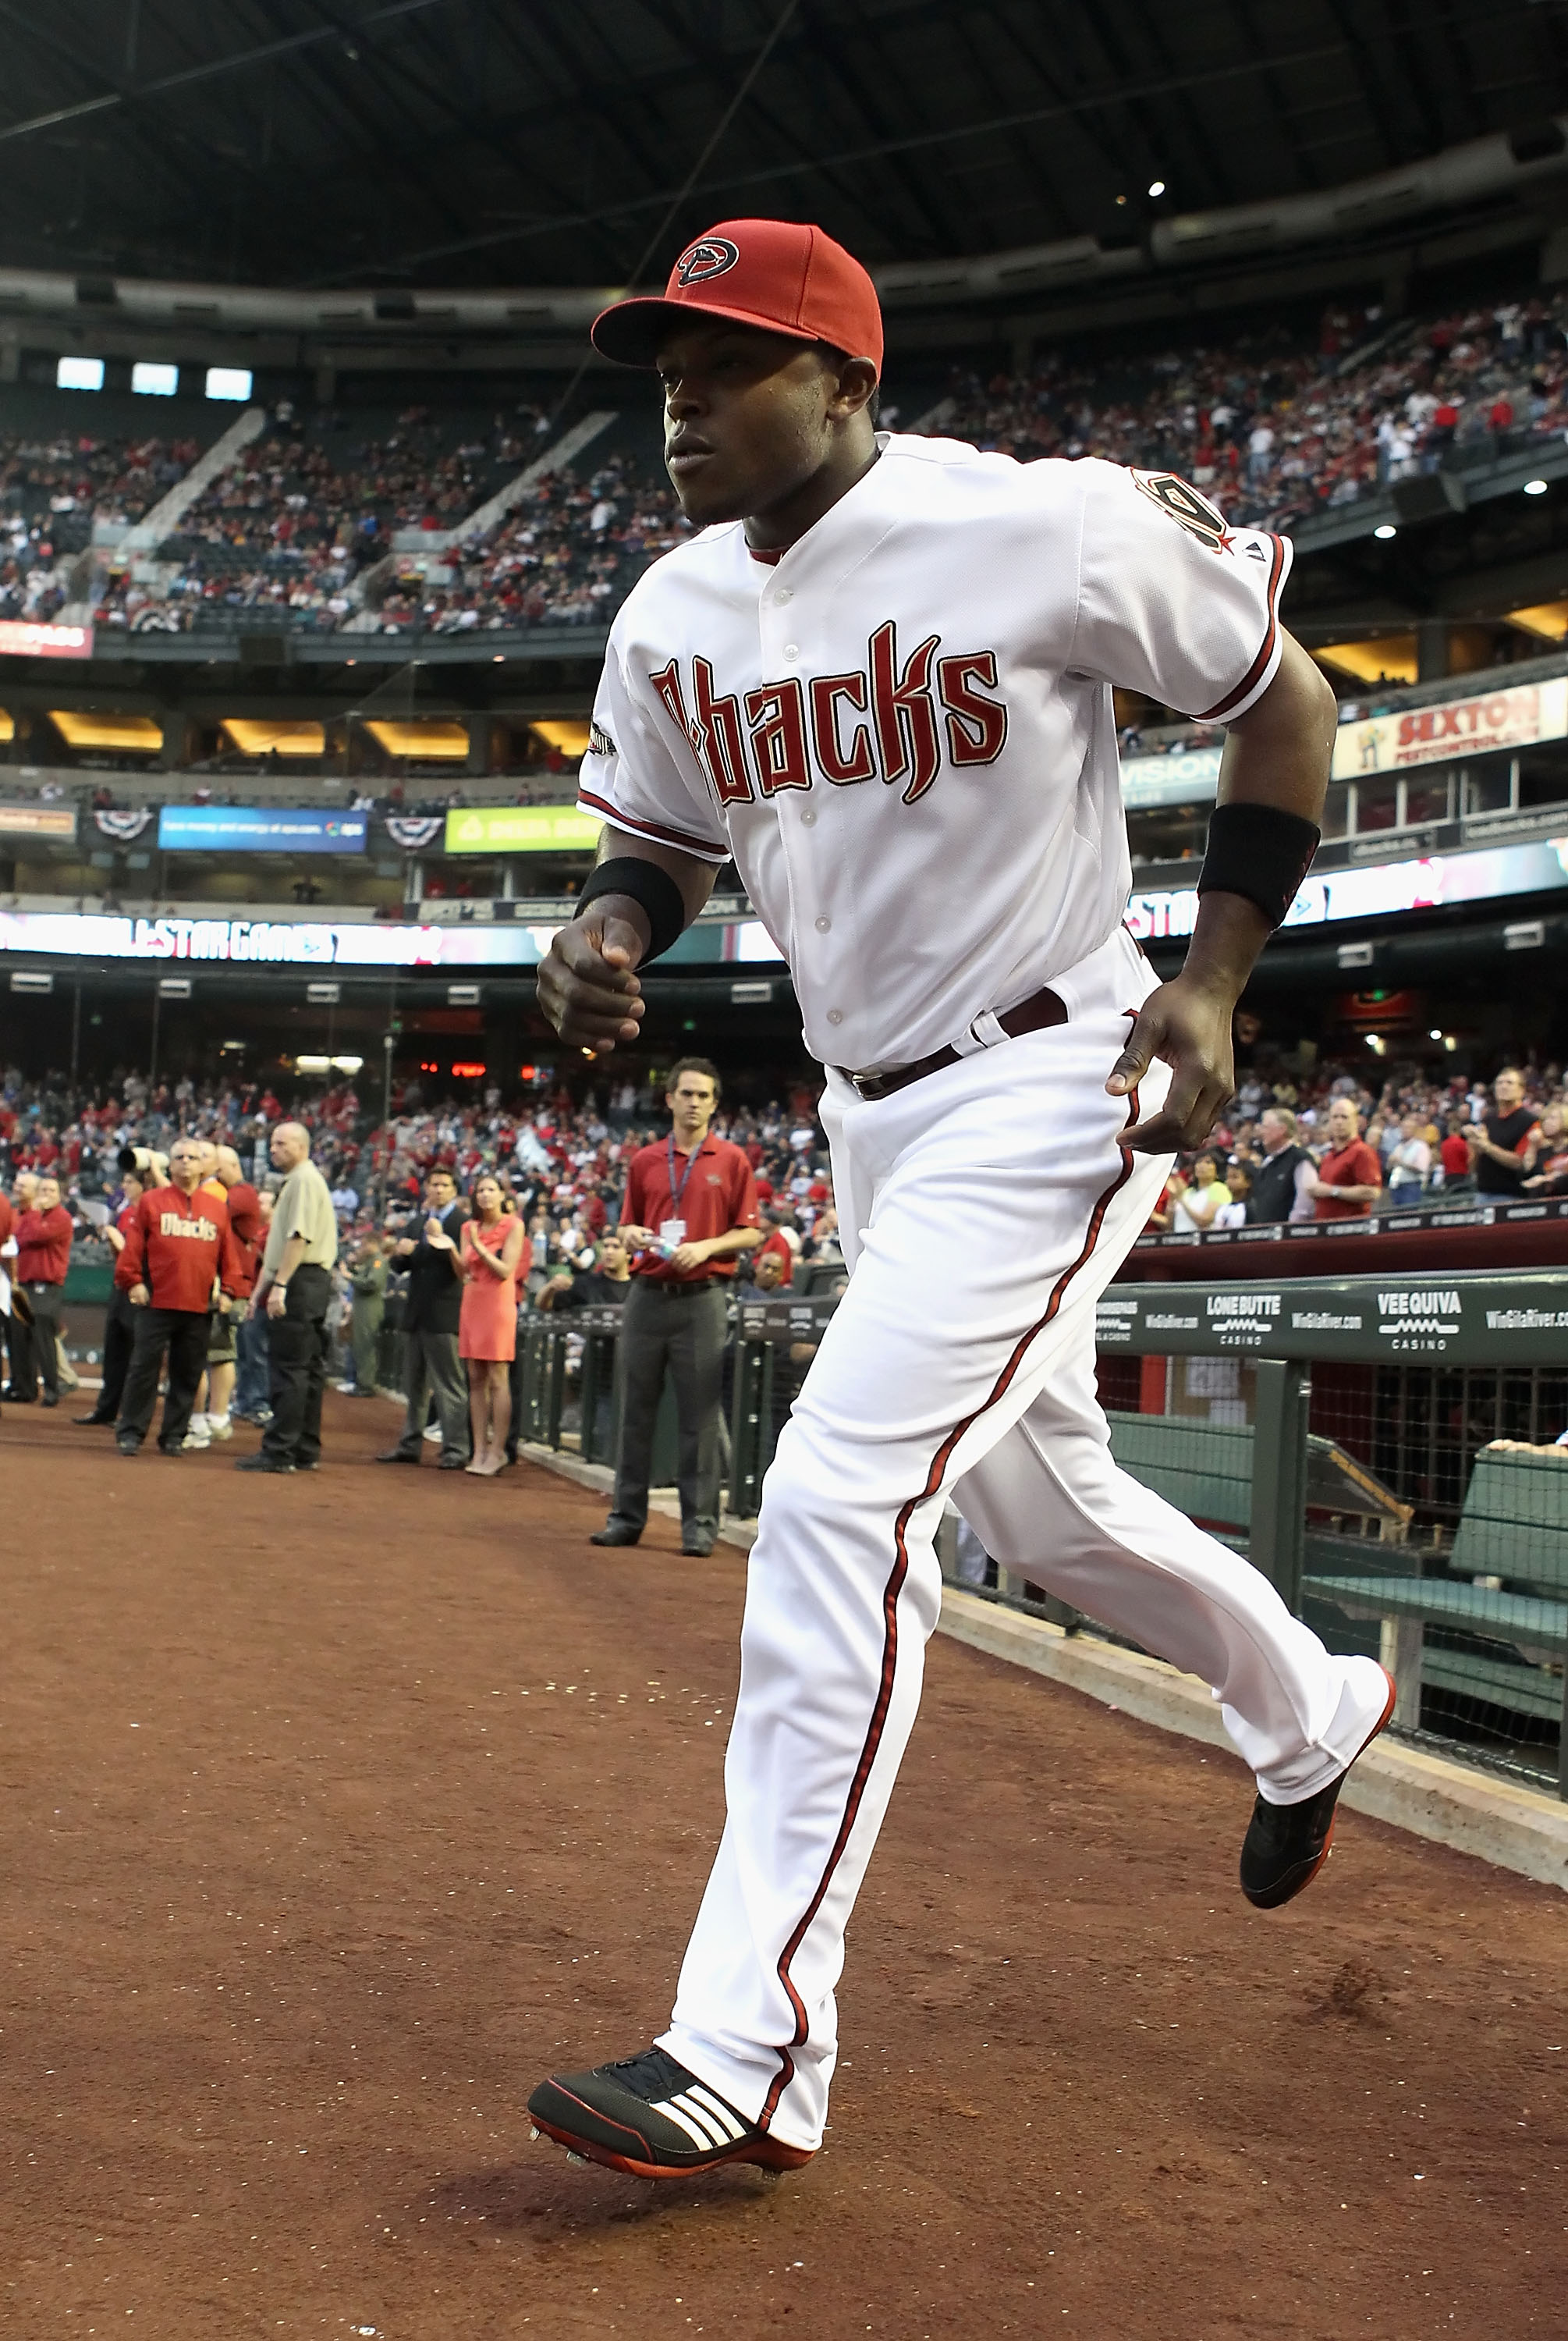 PHOENIX, AZ - APRIL 08:  Justin Upton #10 of the Arizona Diamondbacks runs out onto the field during introductions to the Major League Baseball home opening game against the Cincinnati Reds at Chase Field on April 8, 2011 in Phoenix, Arizona. The Diamondb